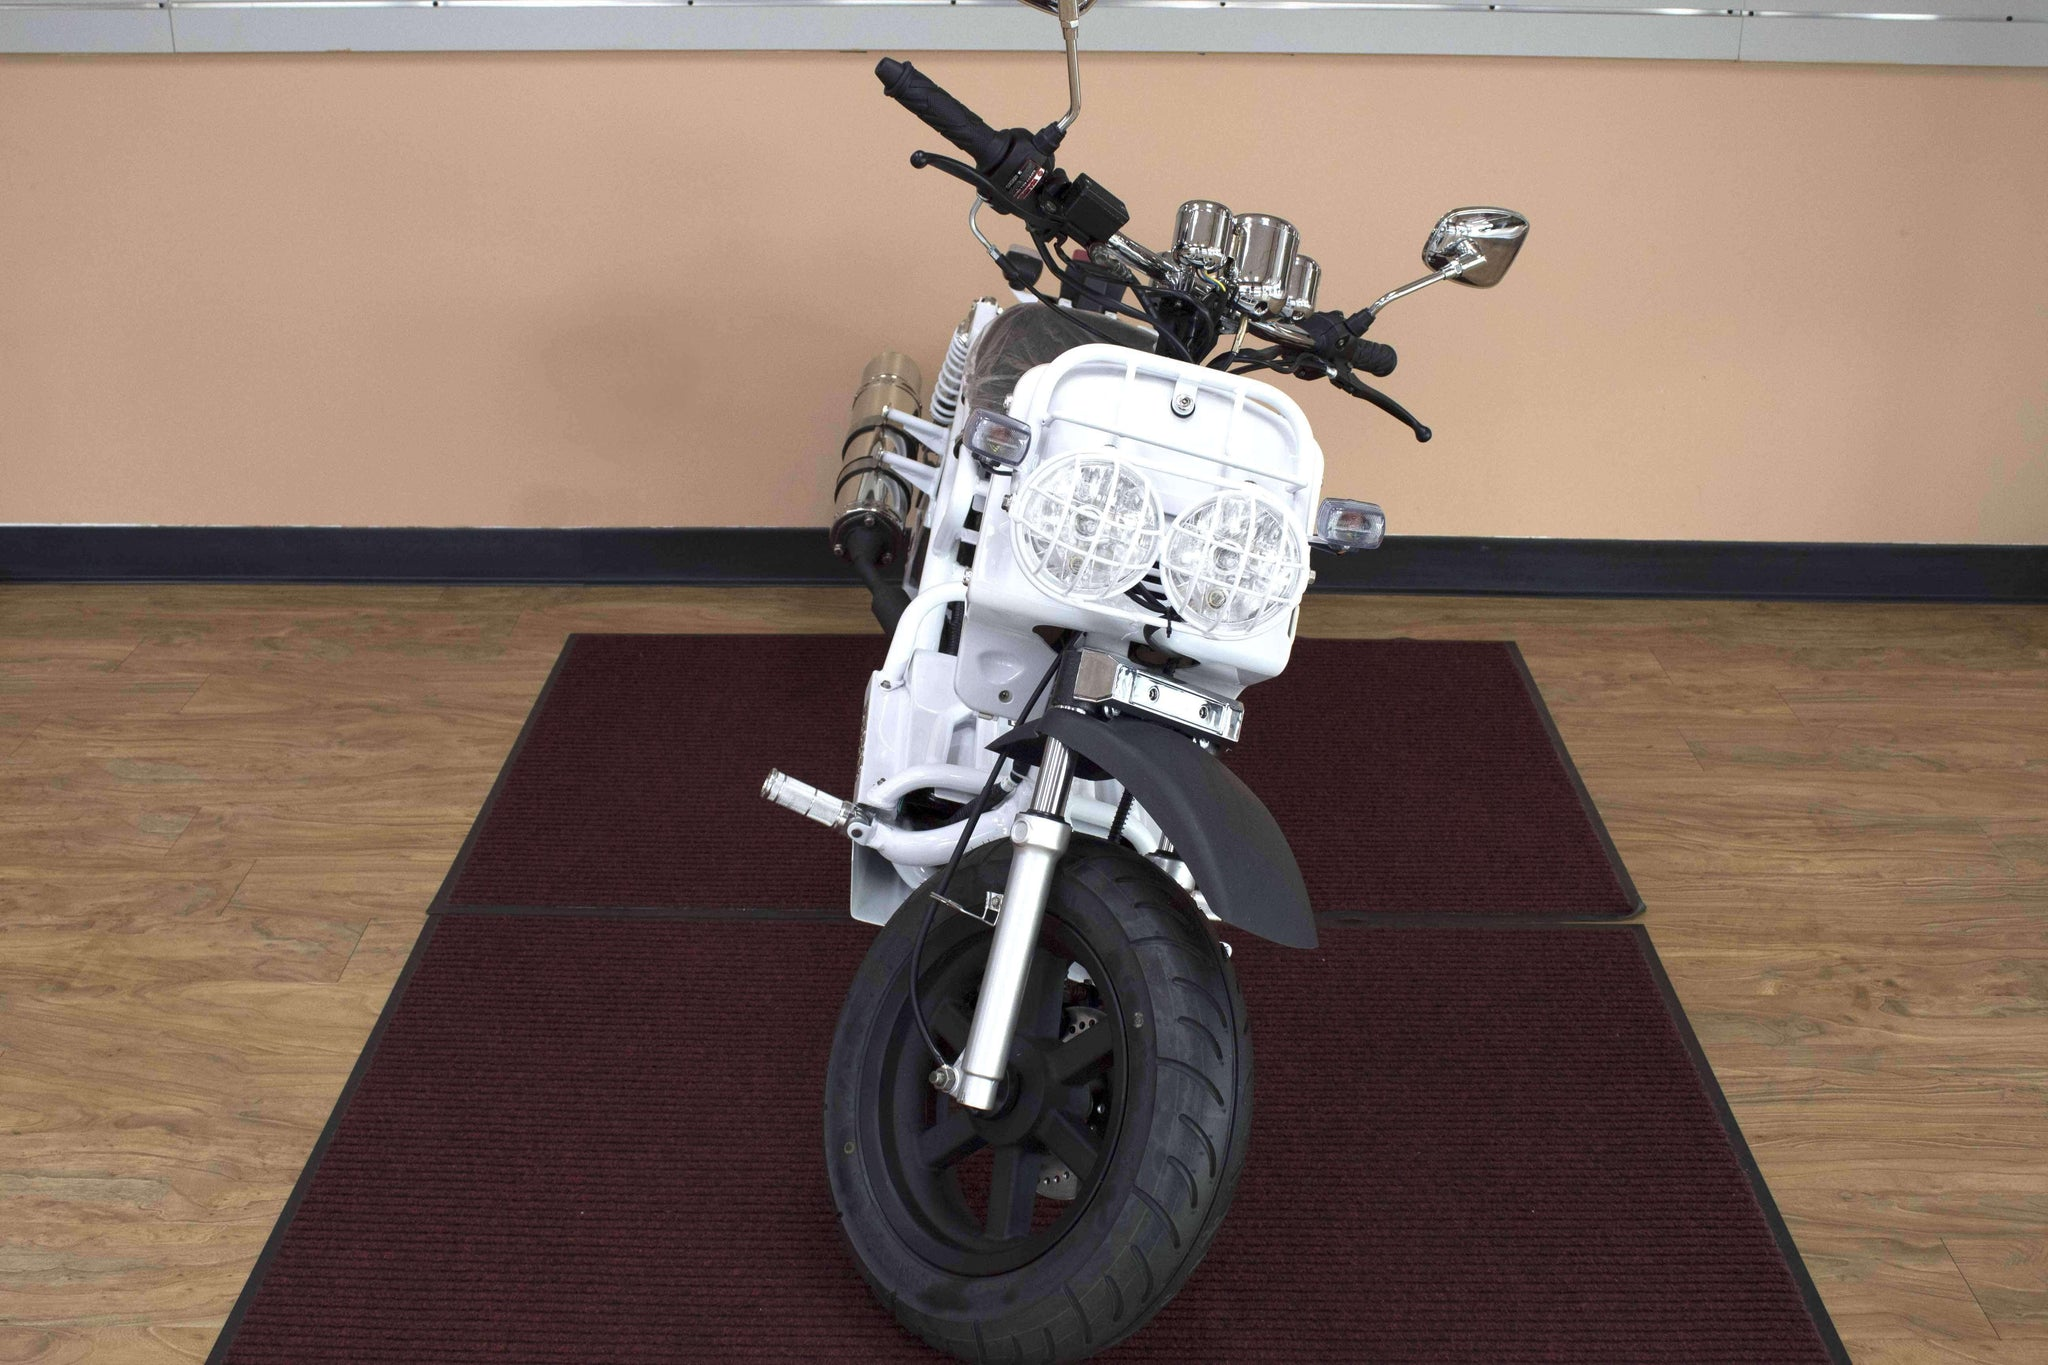 These 50cc Maddog Moped are a fraction of the cost of a